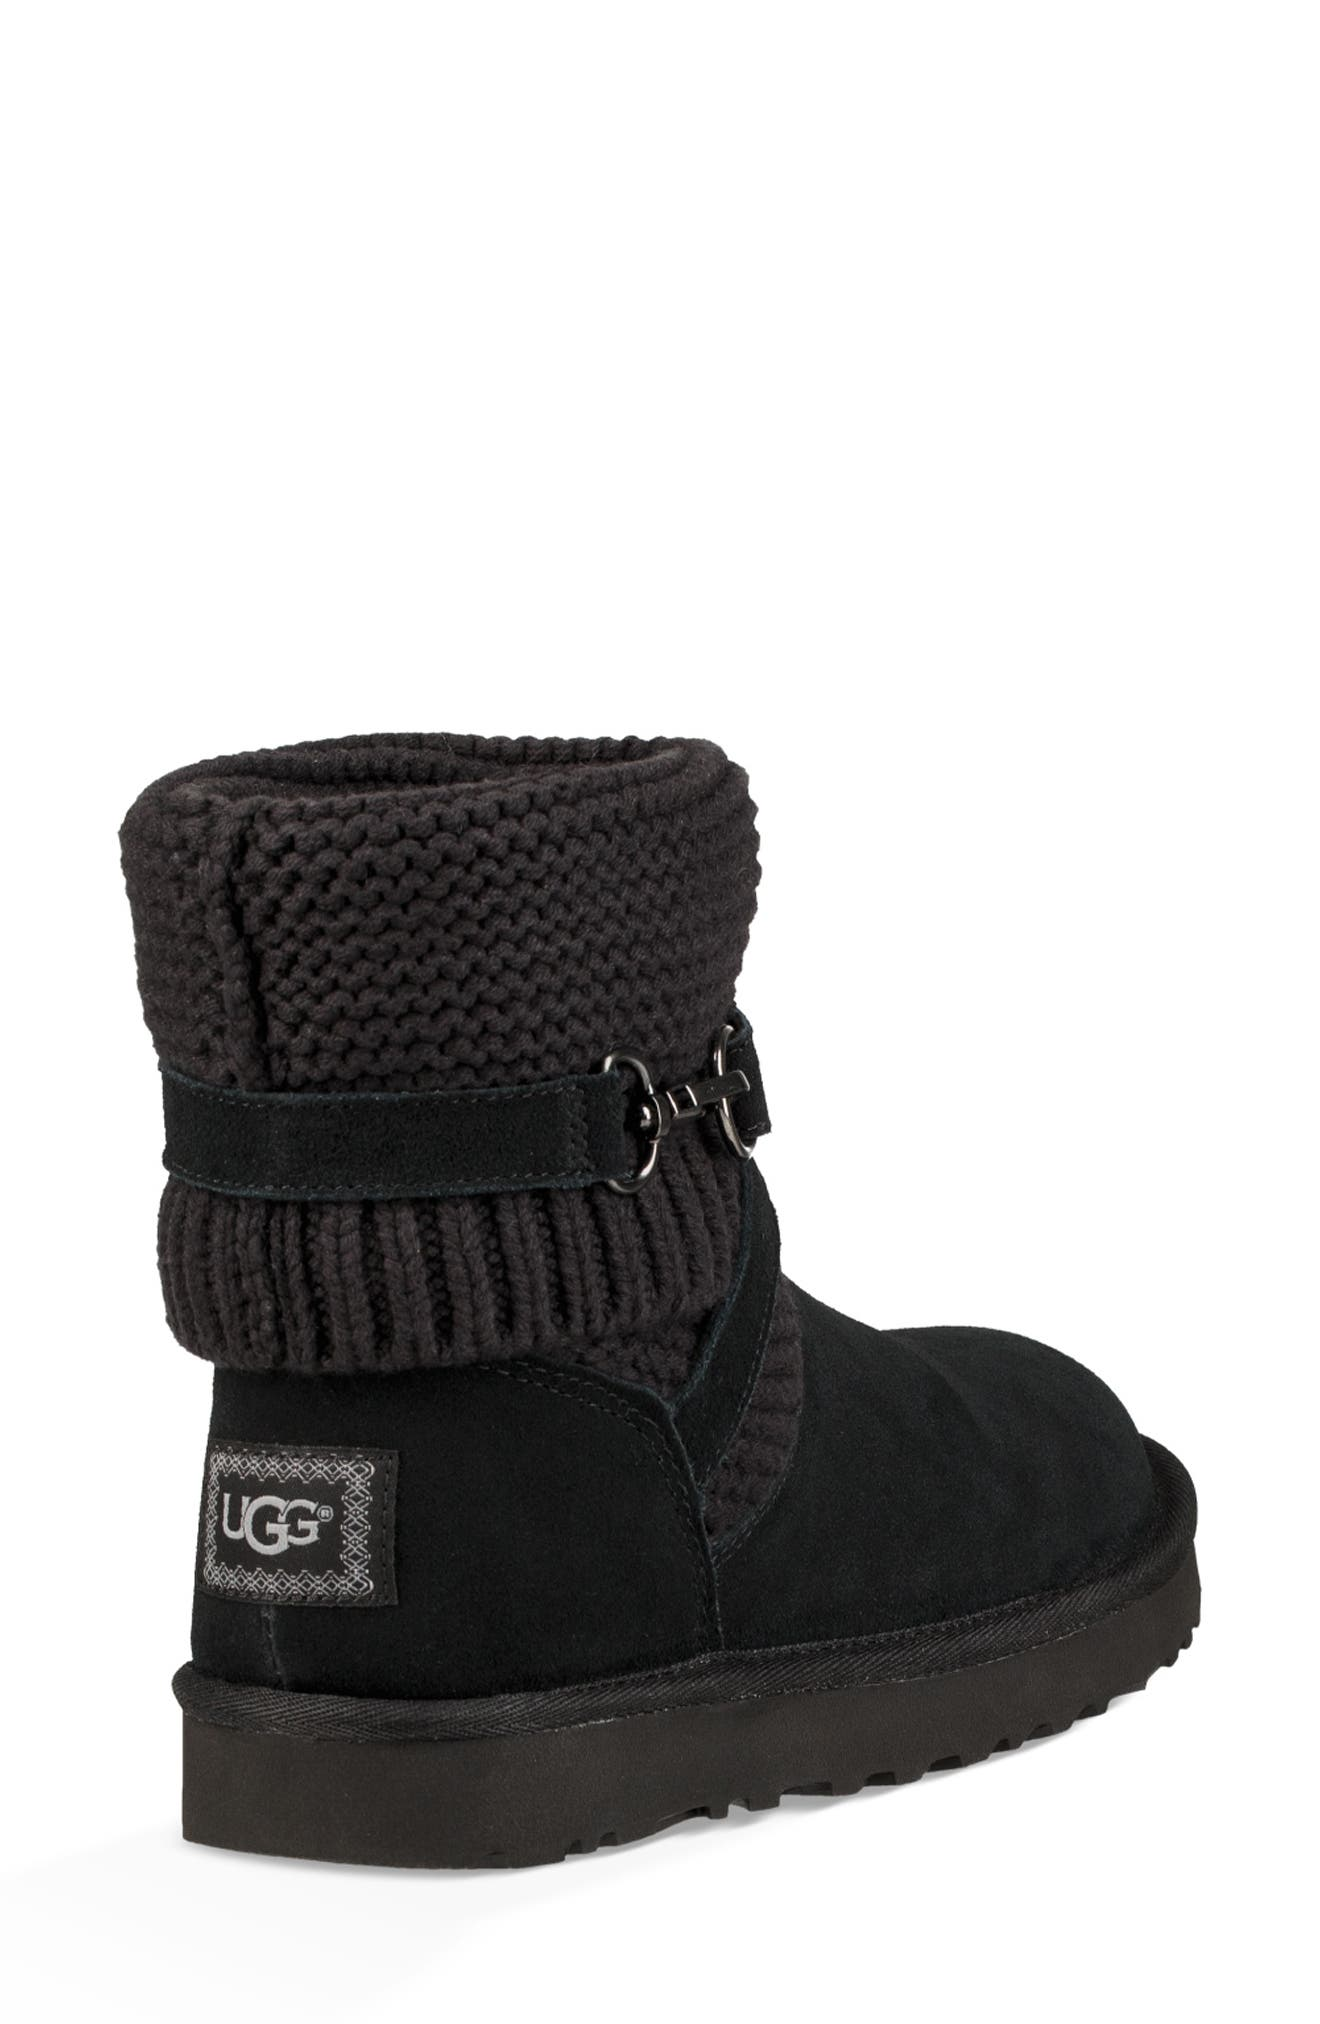 UGGpure<sup>™</sup> Strappy Purl Knit Bootie,                             Alternate thumbnail 9, color,                             BLACK SUEDE